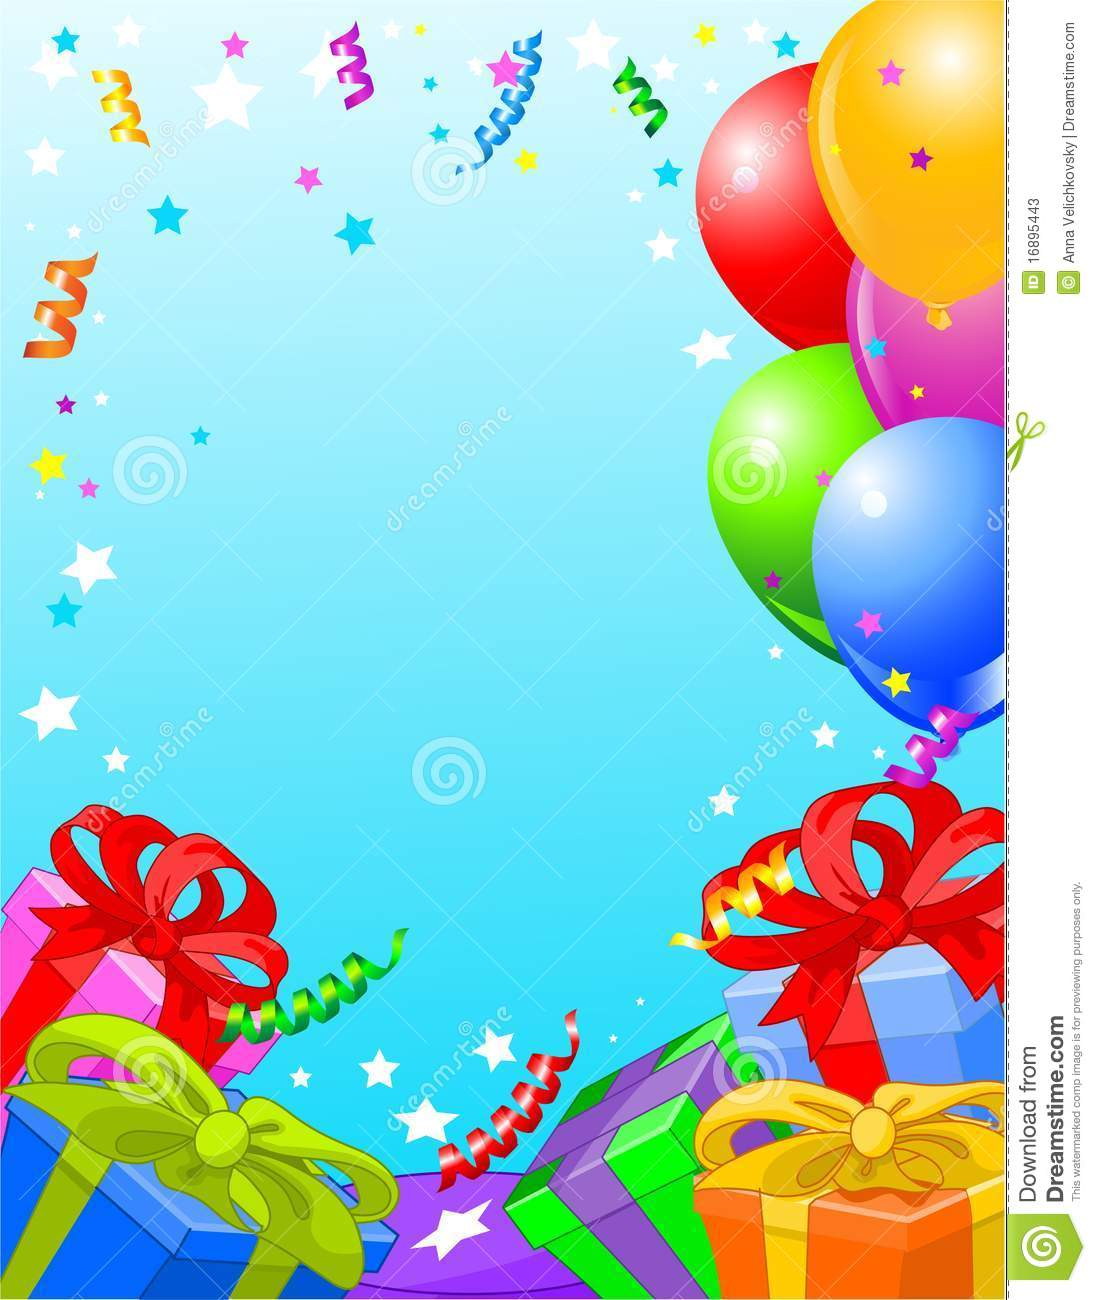 Birthday Party Card Stock Photos Image 16895443